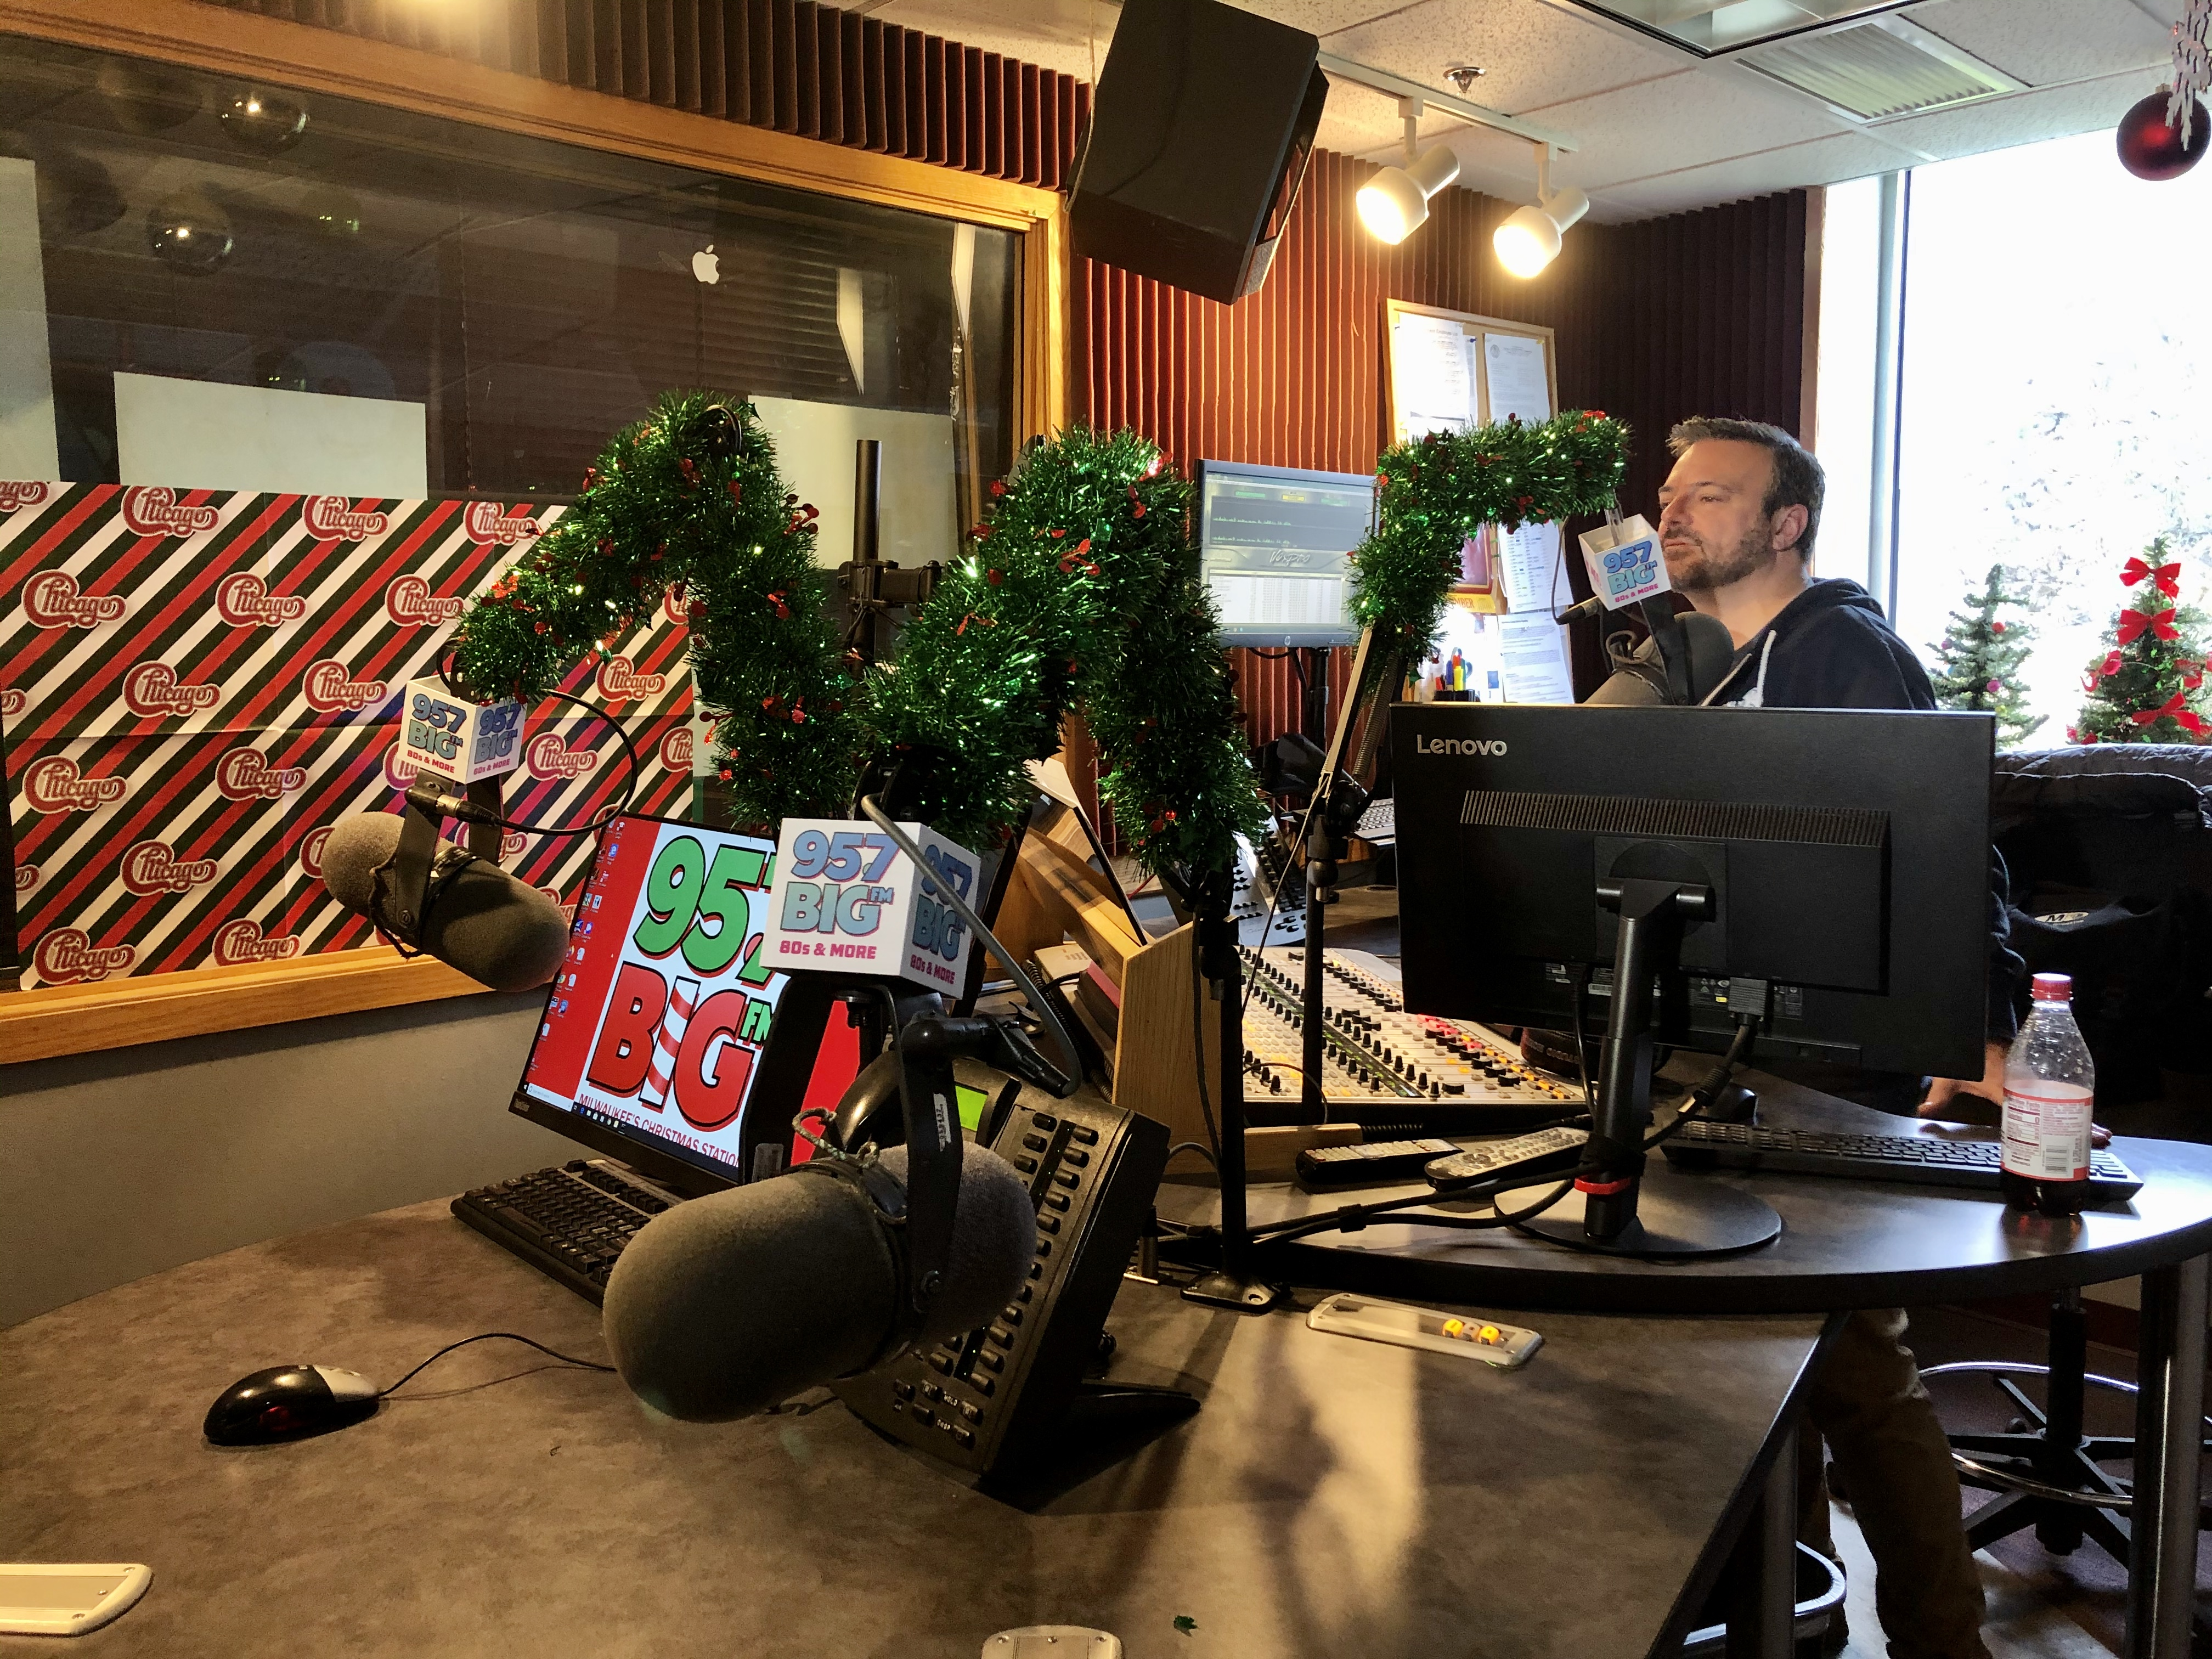 Christmas Music 2020 On Radio Richmond Va It's never too early:' Local radio station begins playing nonstop